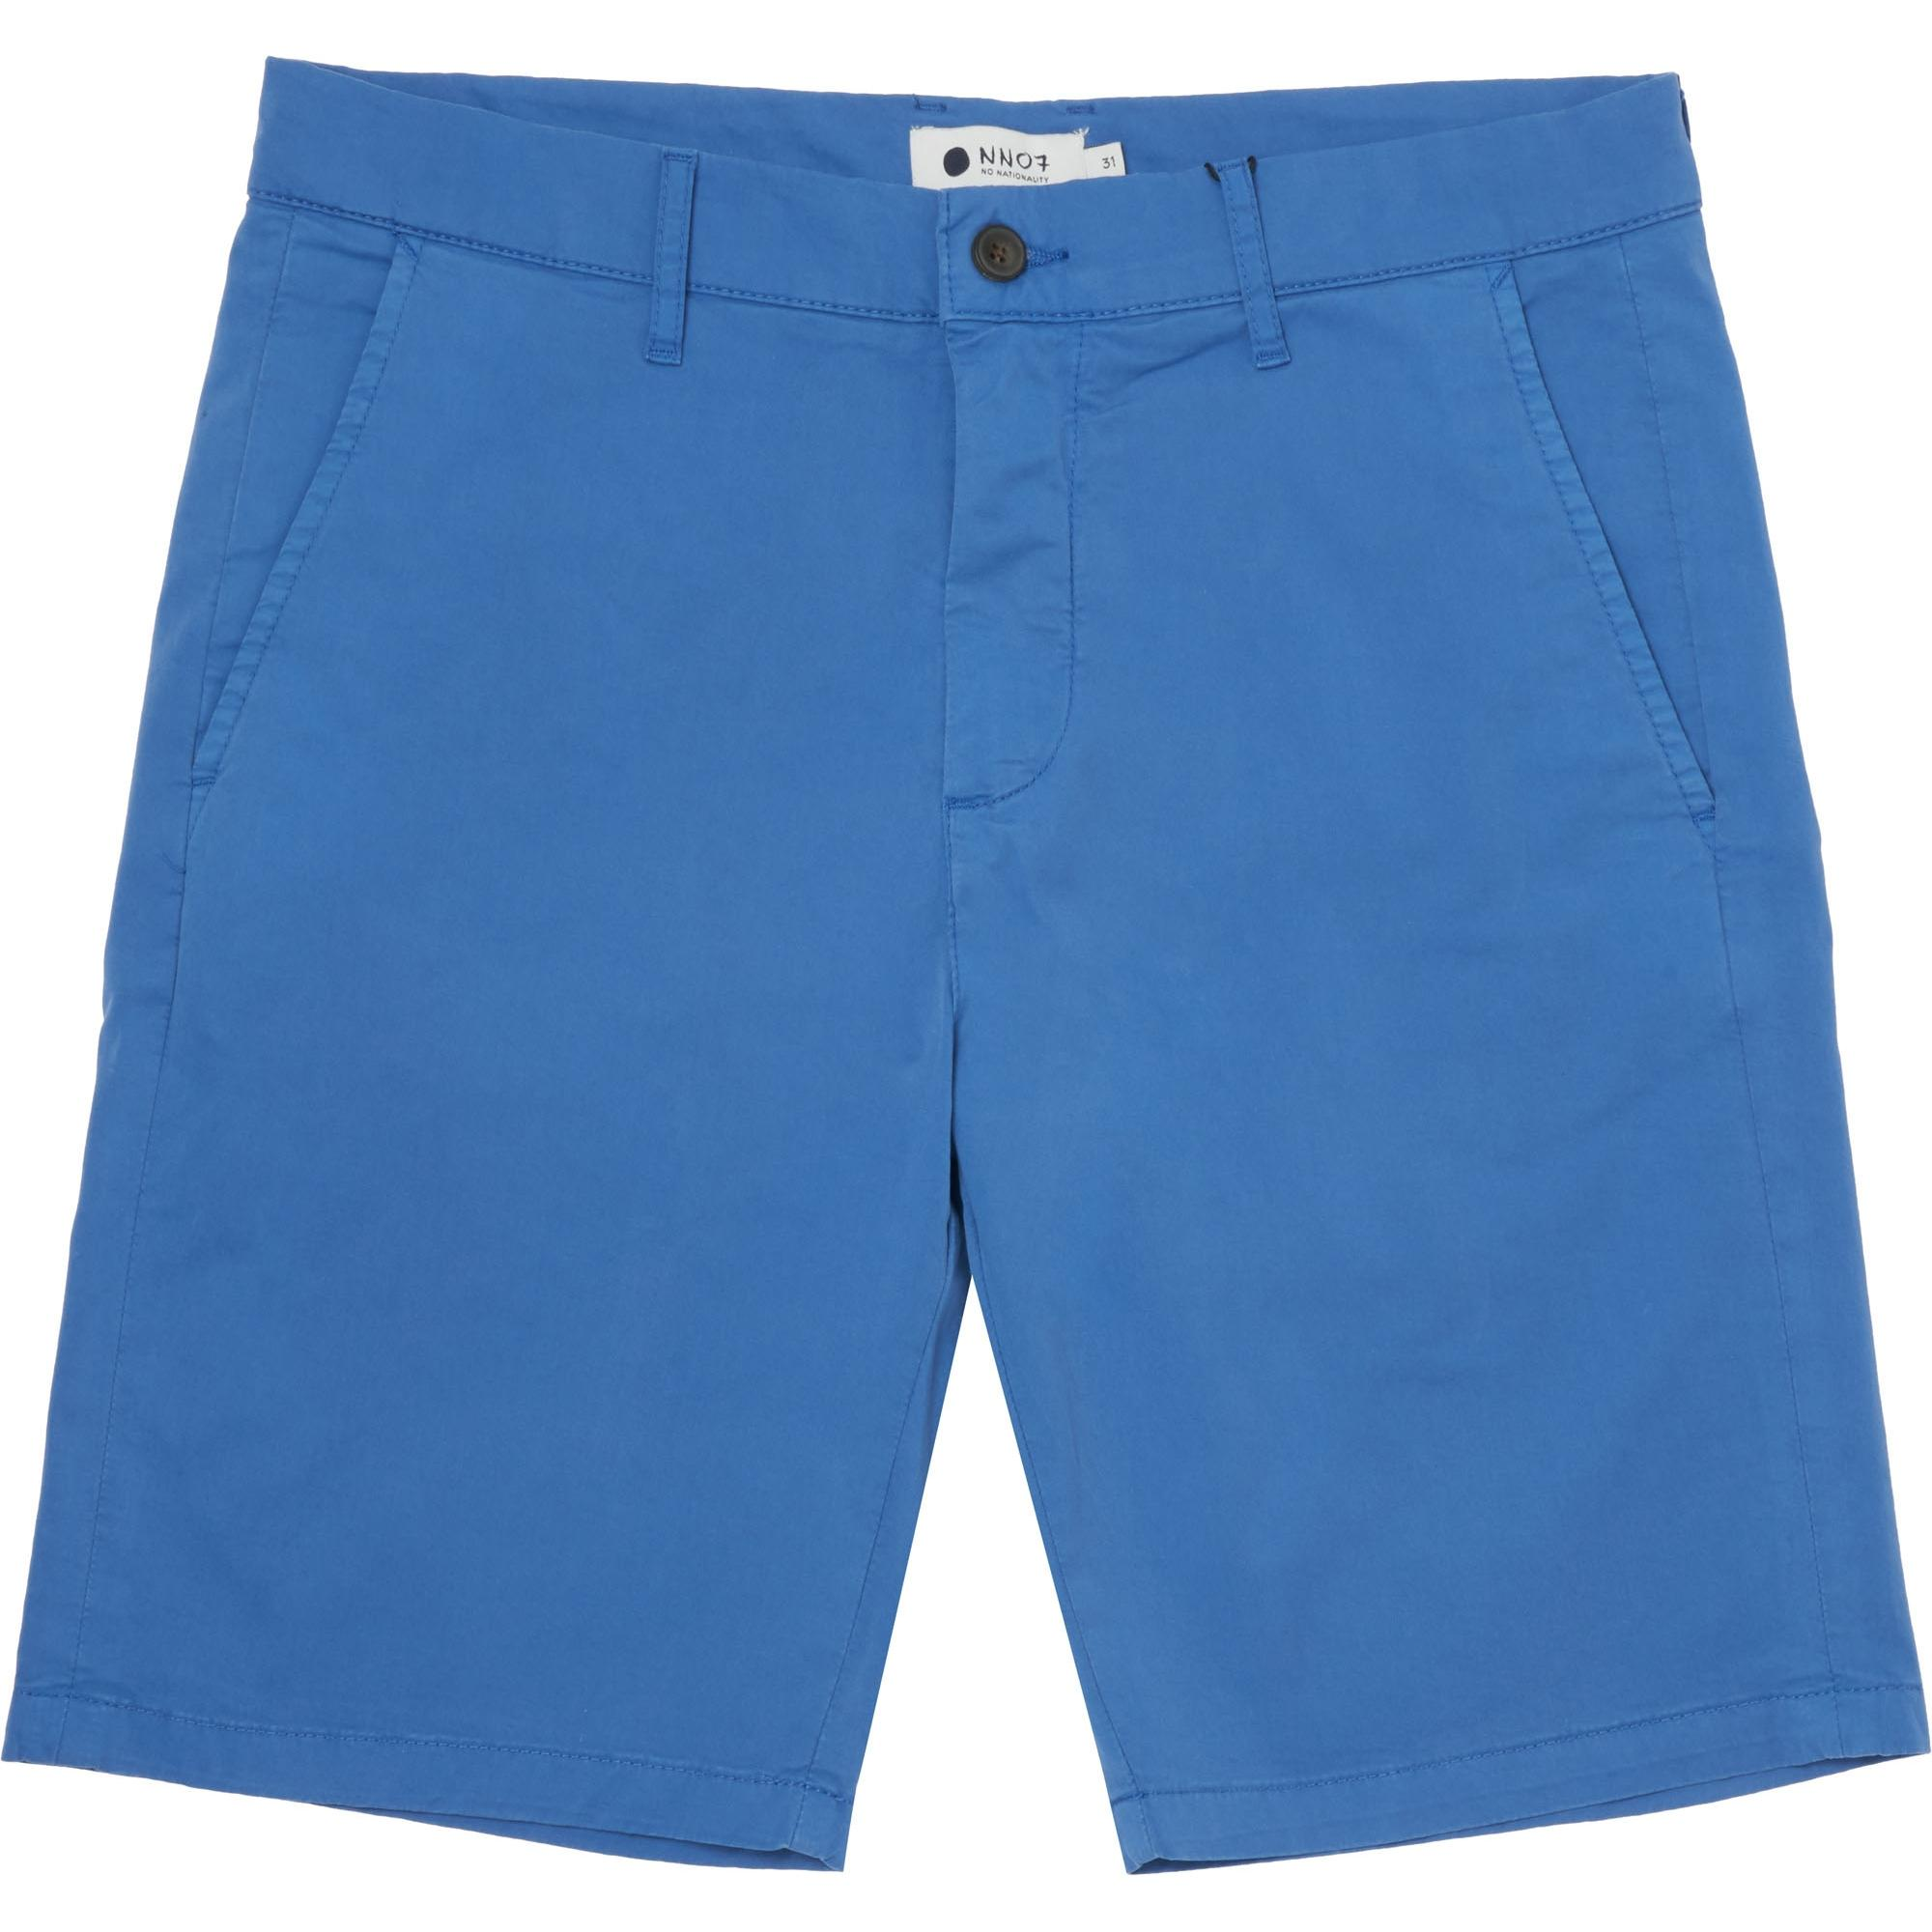 Nn.07 Crown Garment-dyed Stretch-cotton Twill Shorts - Cobalt blue Sale Finishline For Sale Cheap Real Genuine For Sale VslwAsnqs